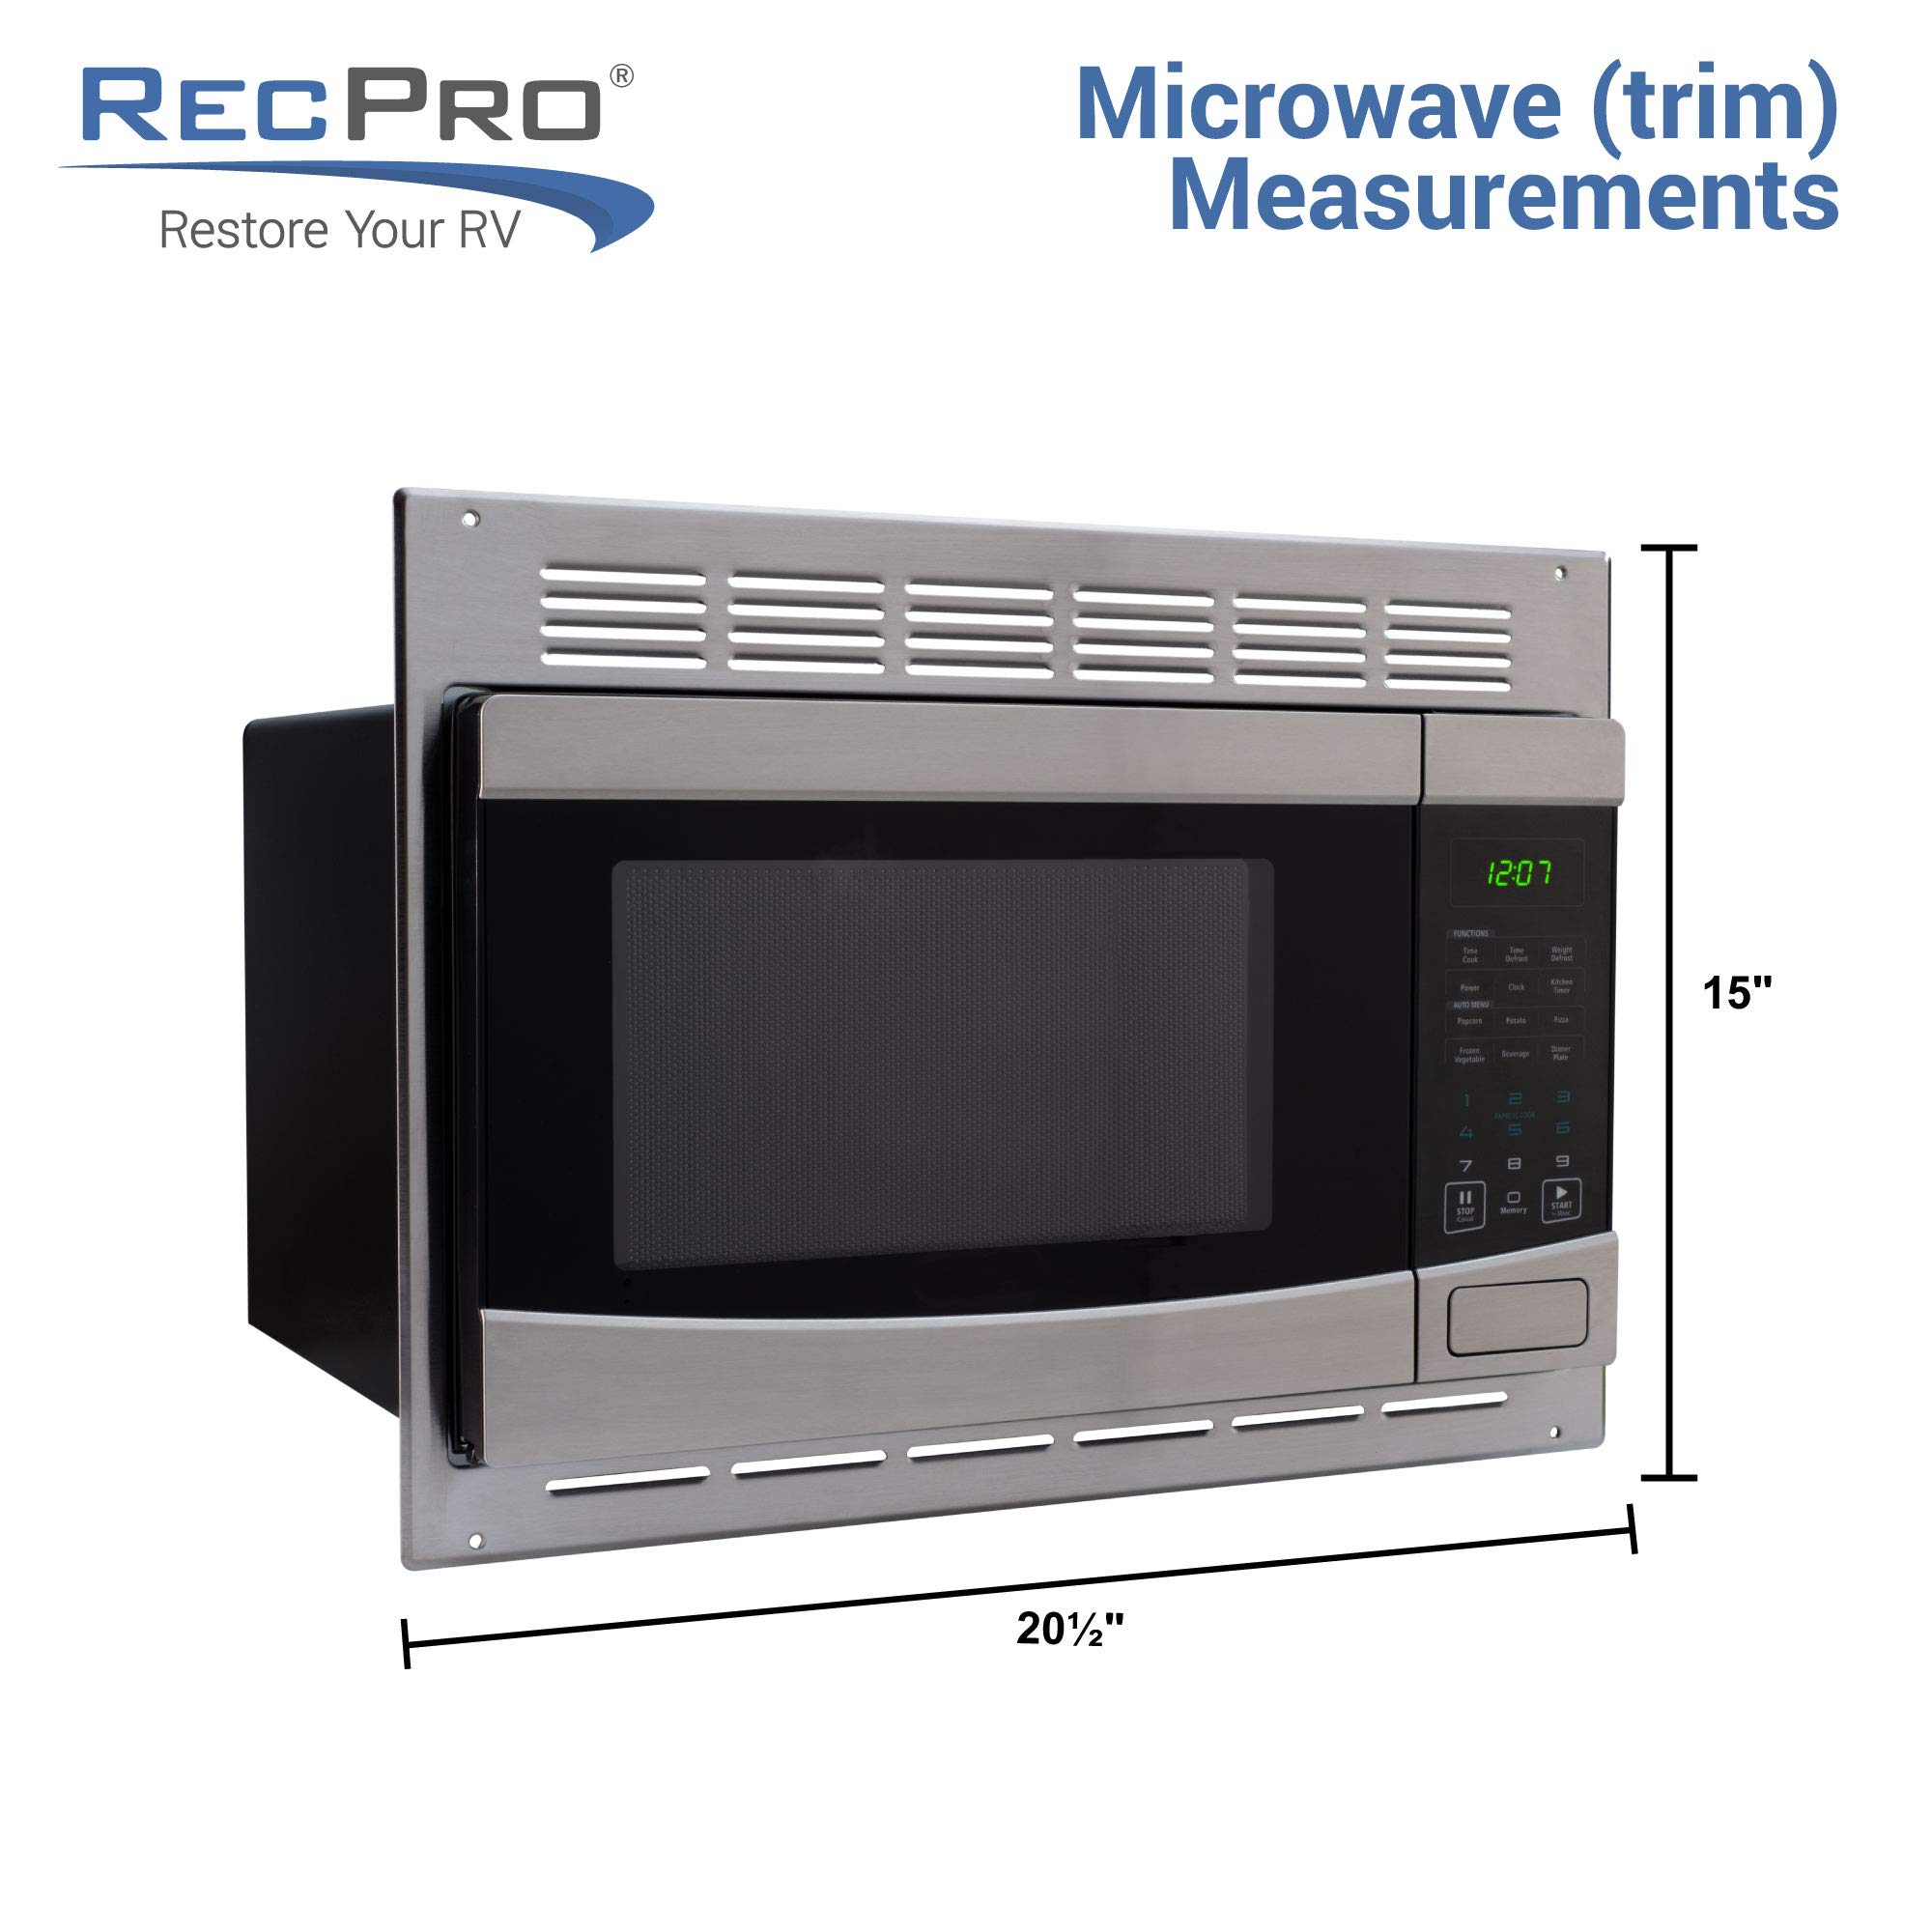 RecPro RV Stainless-Steel Microwave 1.0 cu ft. With Trim Package EM925AQR-S by RecPro (Image #4)